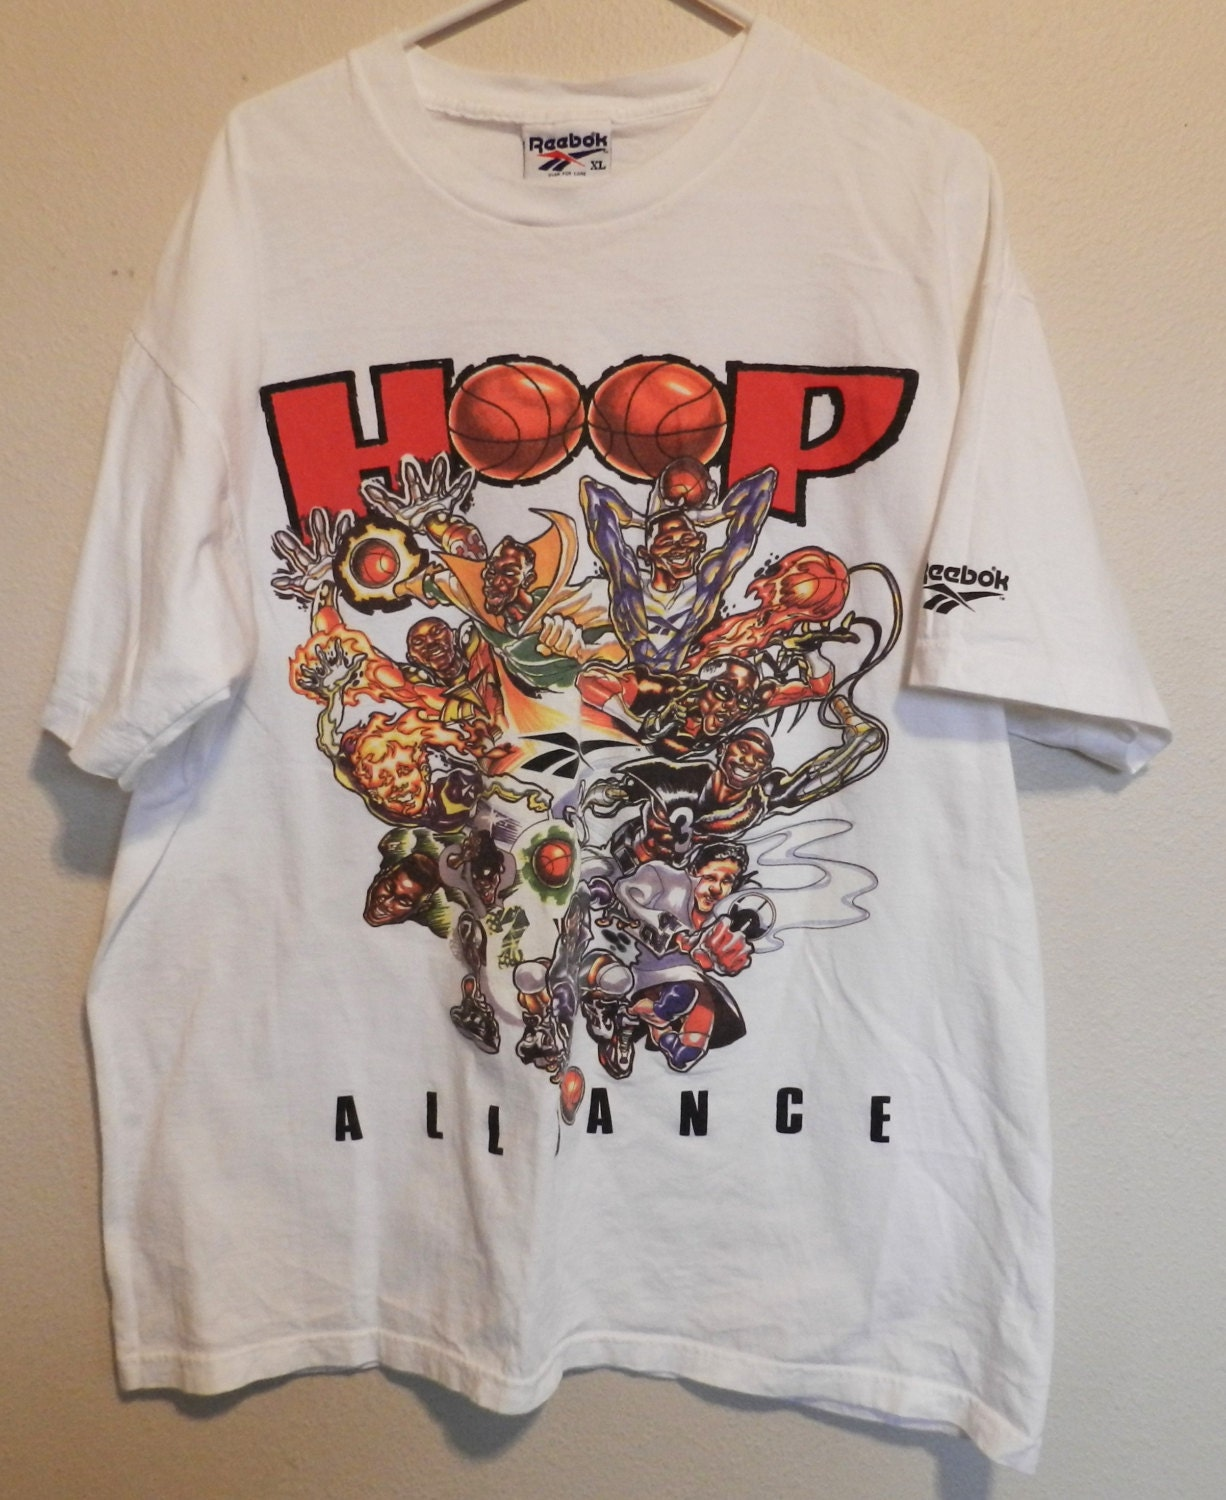 Vintage nba caricature t shirt reebok hoop alliance early 90s for Retro basketball t shirts